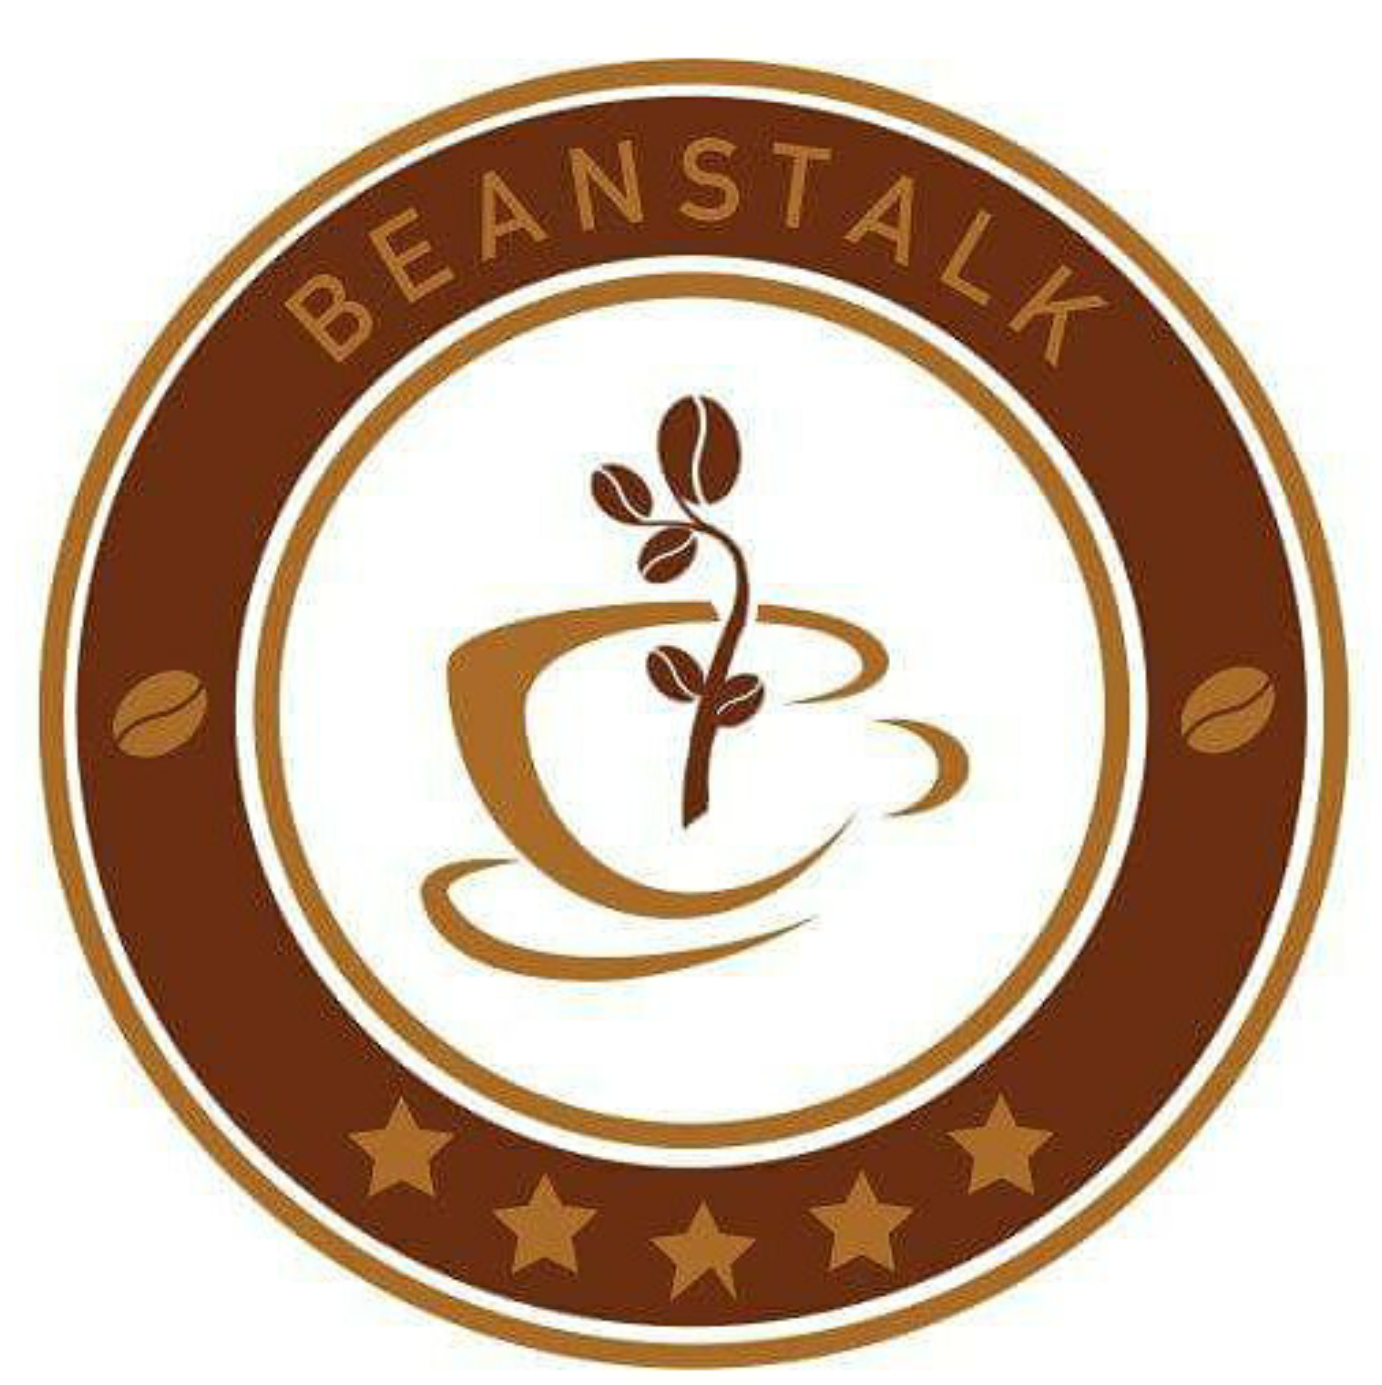 Beanstalk Cafe Cheshunt